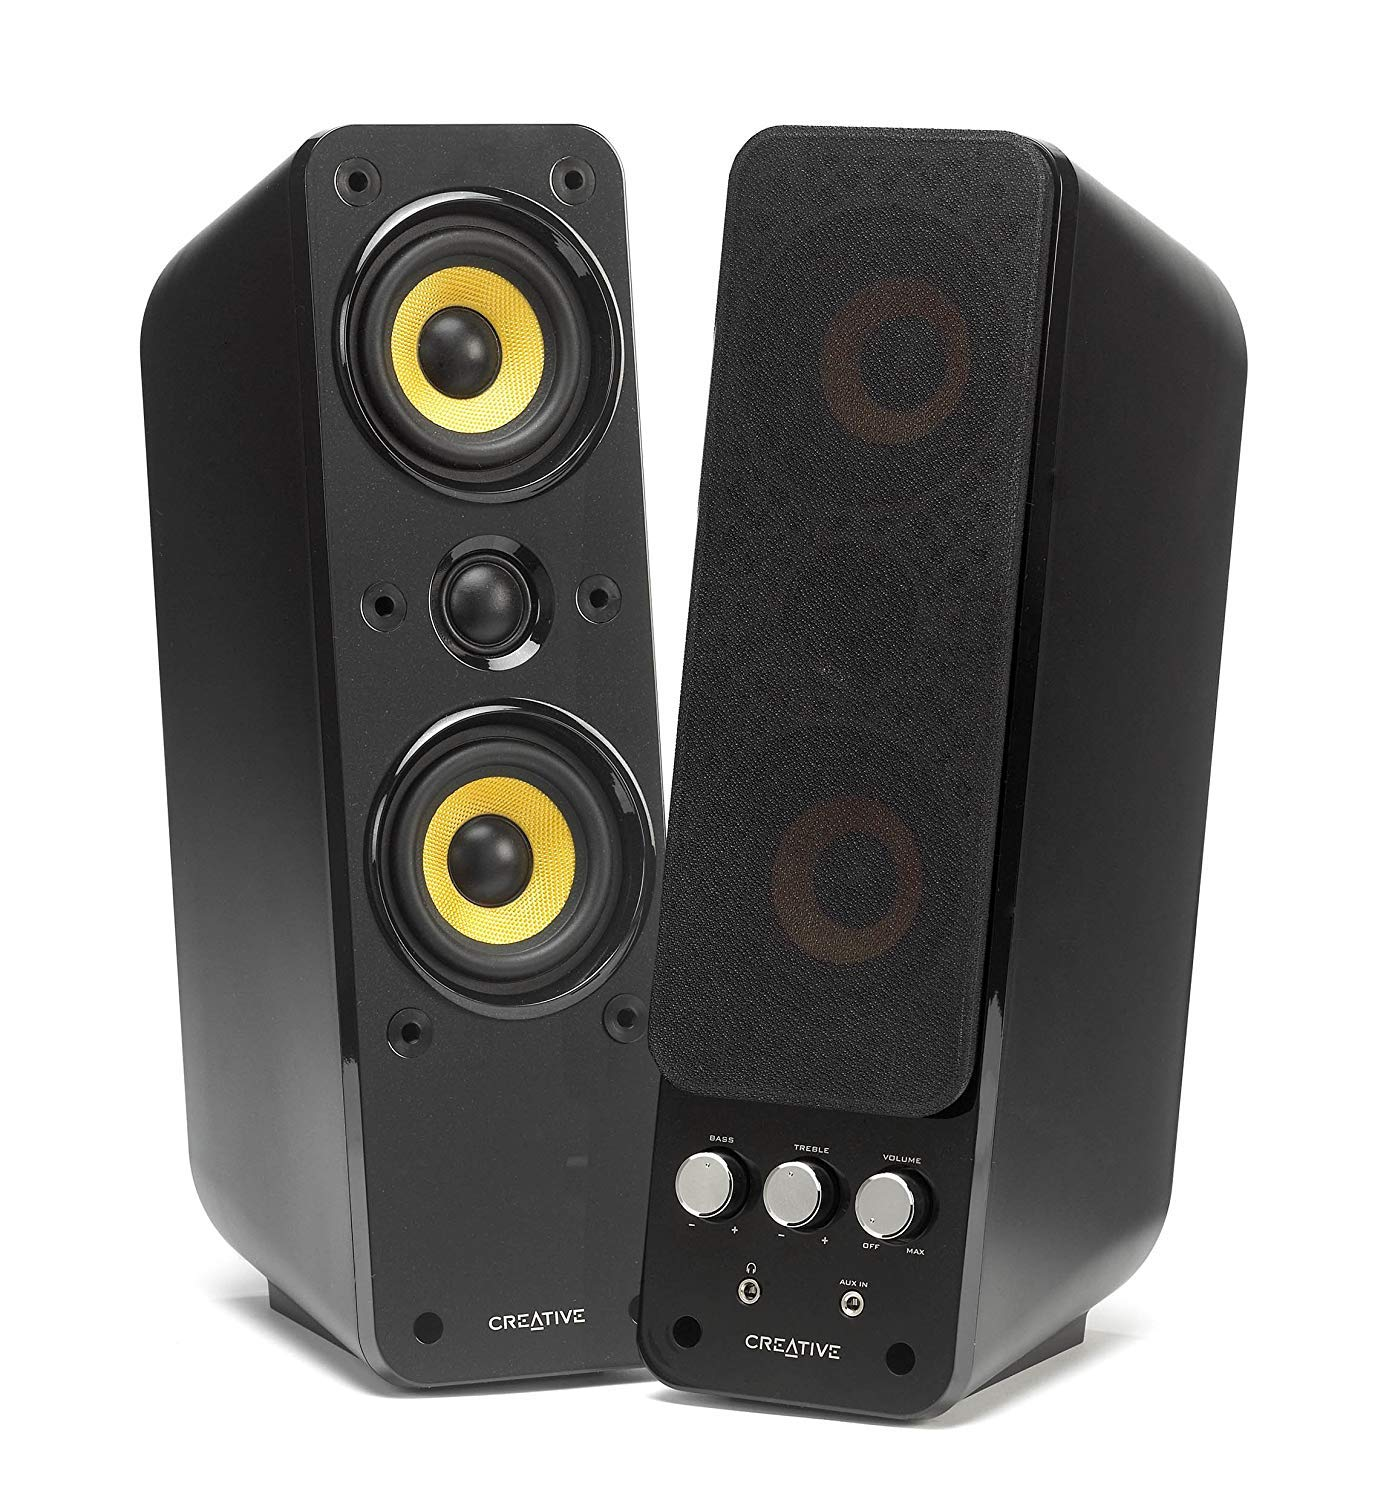 Creative Labs Gigaworks T40 Series II Altavoz 32 W Negro - Altavoces (2.0 Canales, Alámbrico, 3,5 mm, 32 W, 60-20000 Hz, Negro)